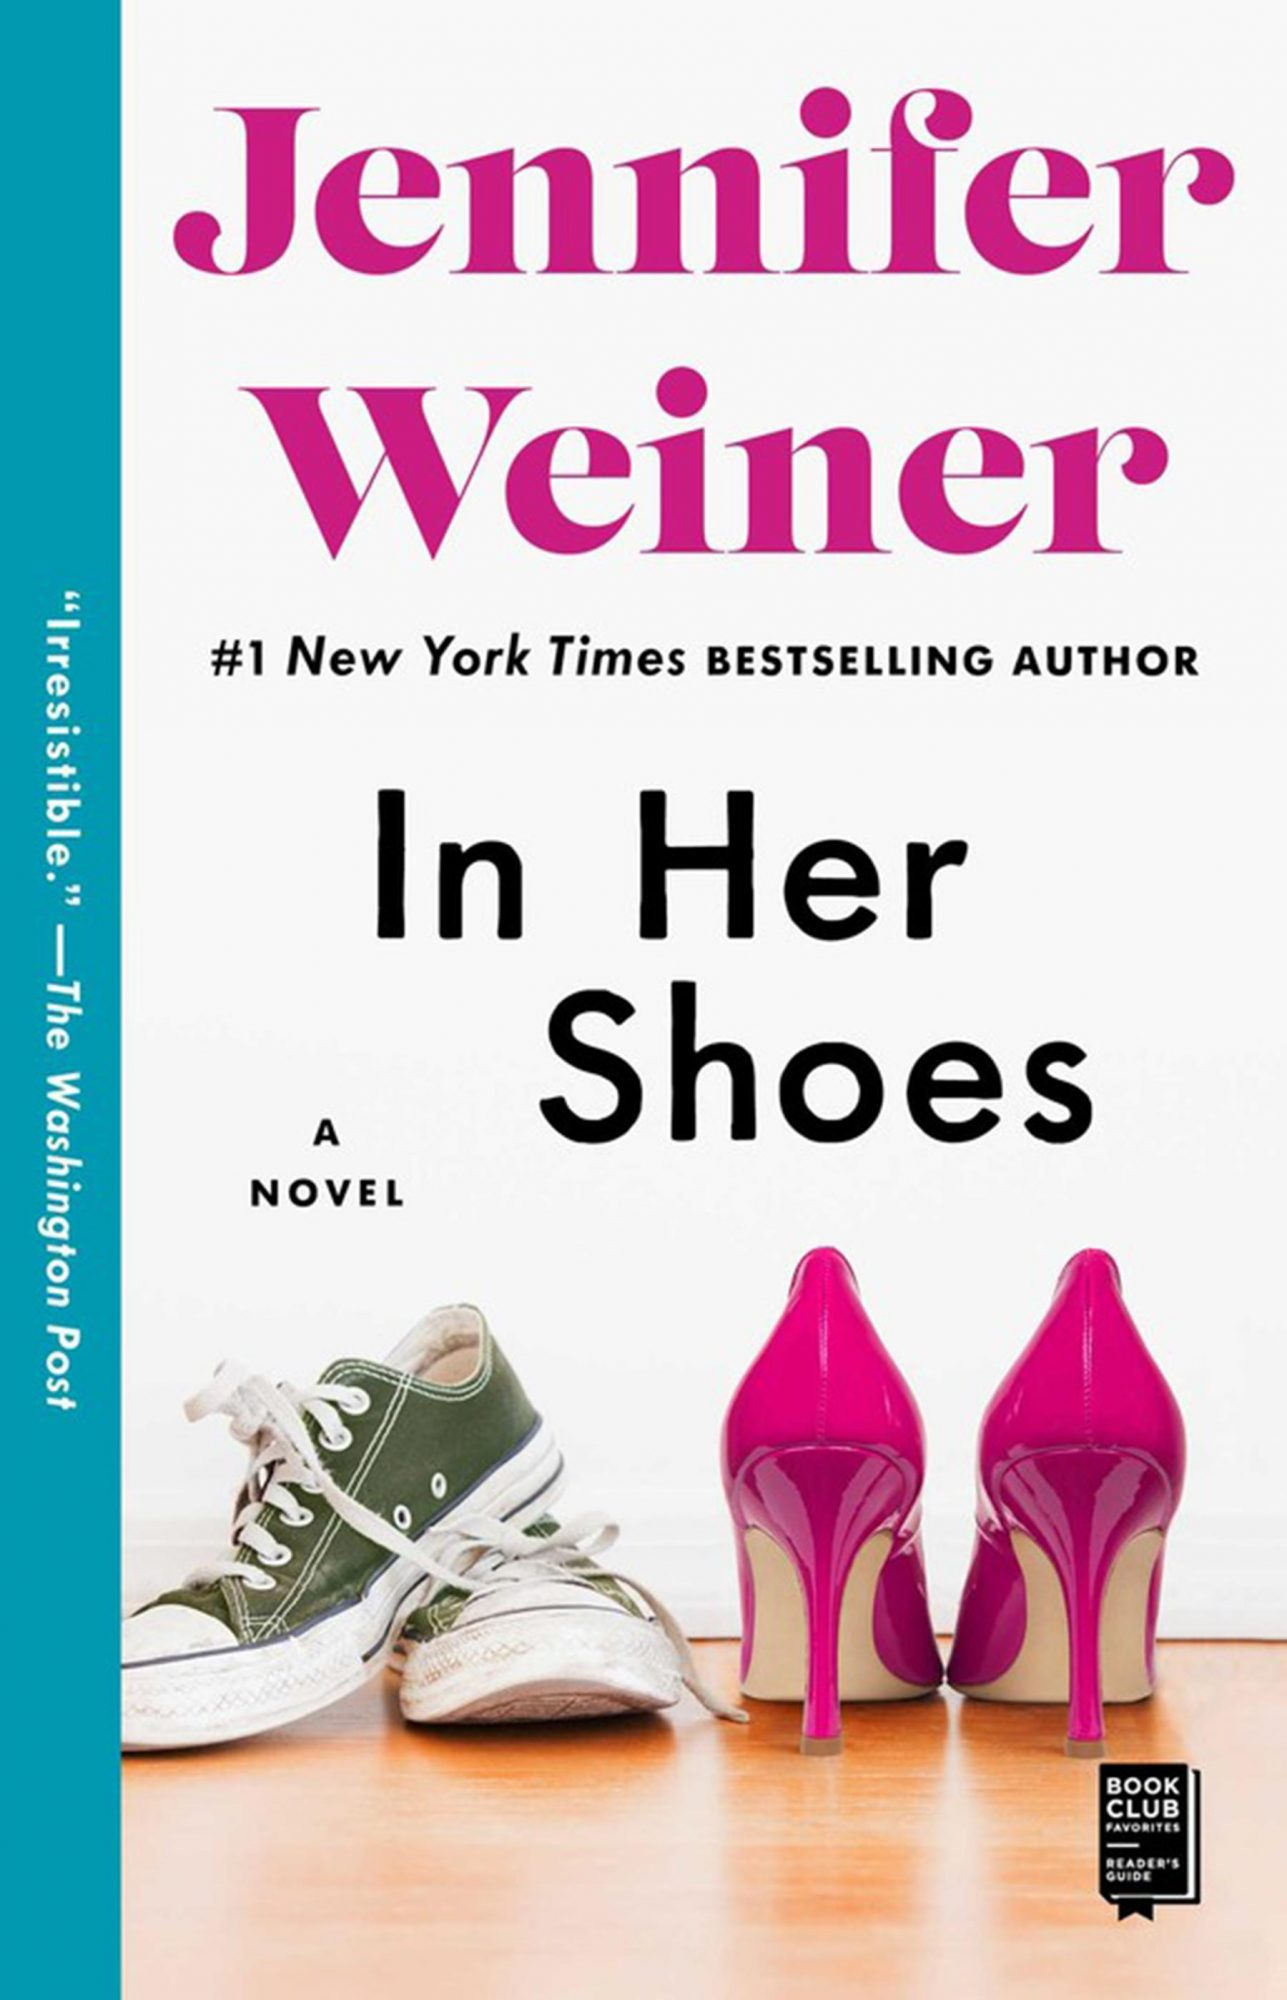 In Her Shoes by Jennifer WeinerCR: Atria Books